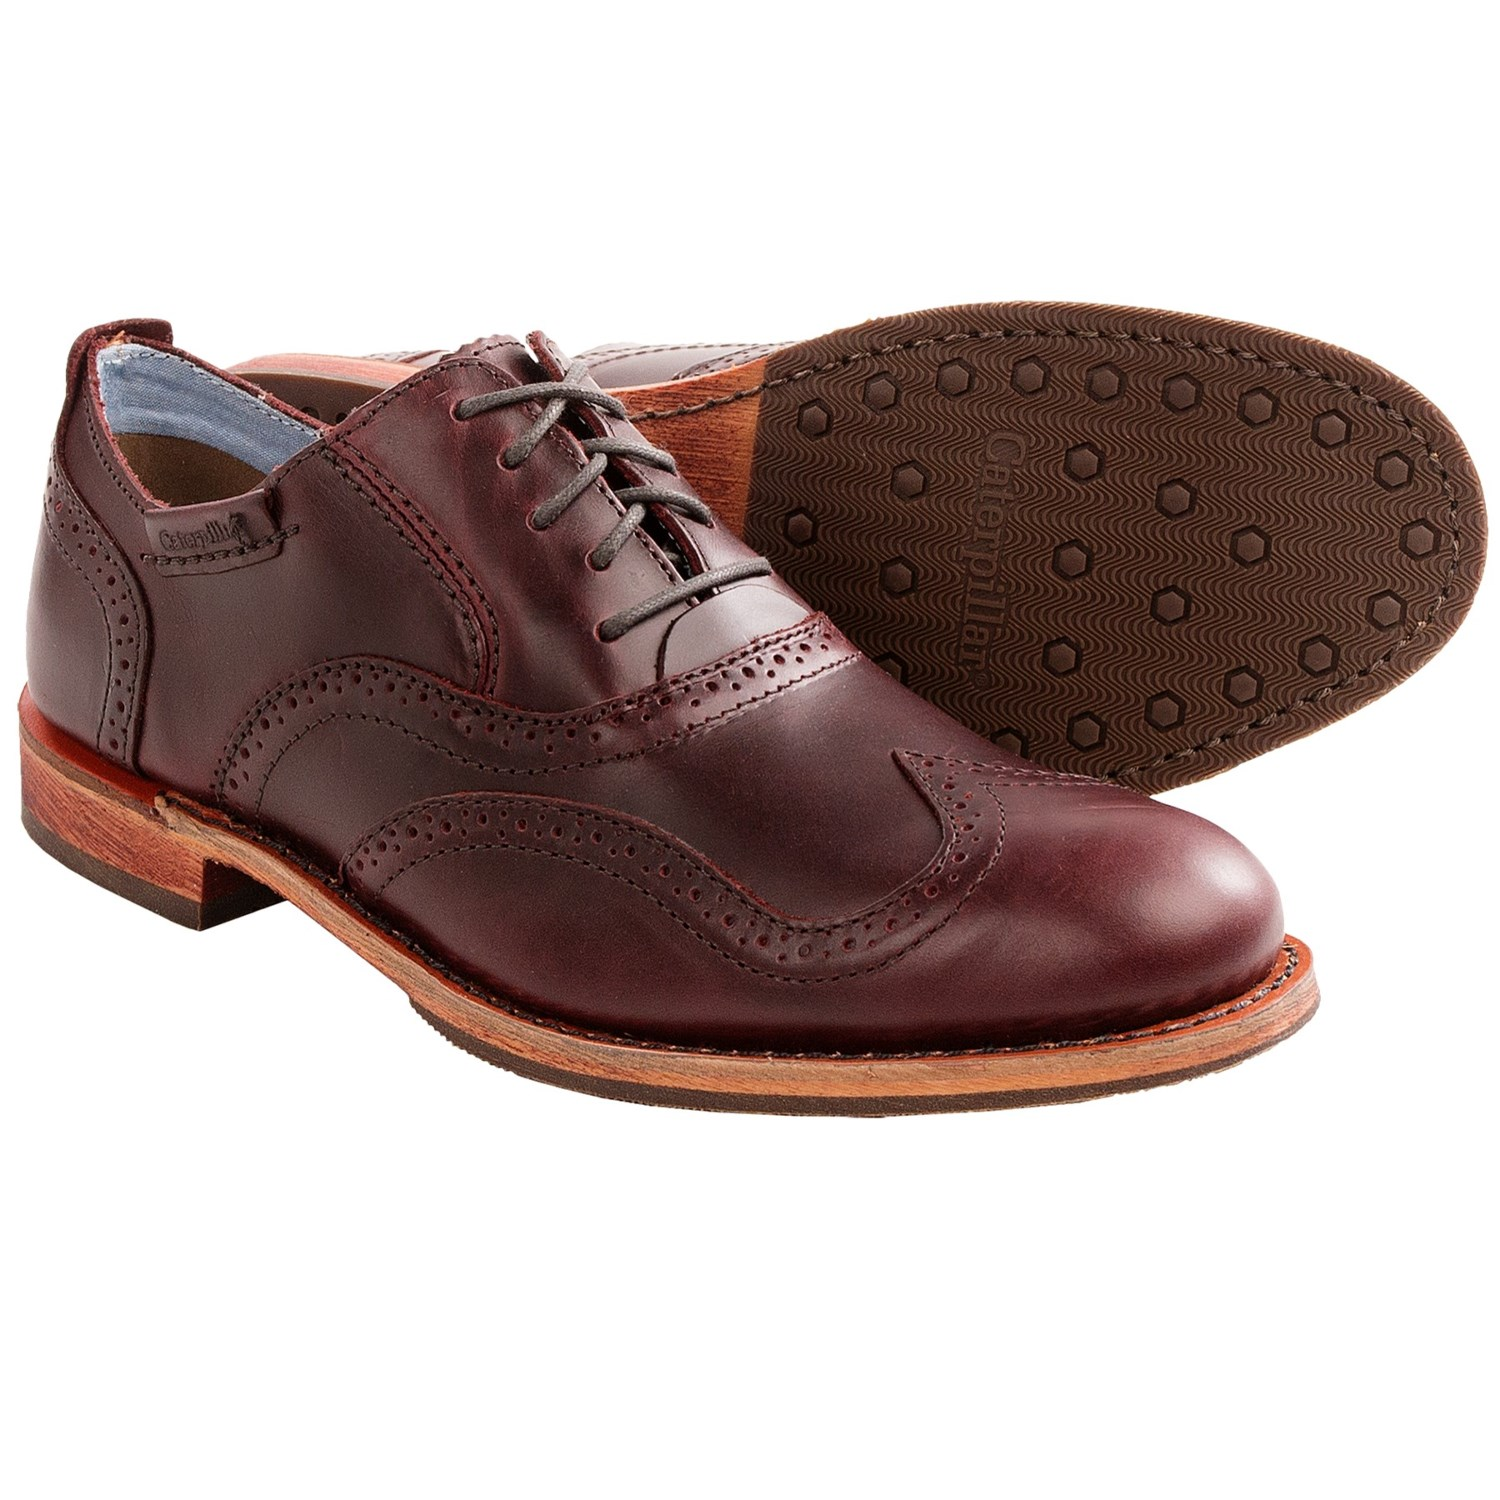 oxblood shoes images